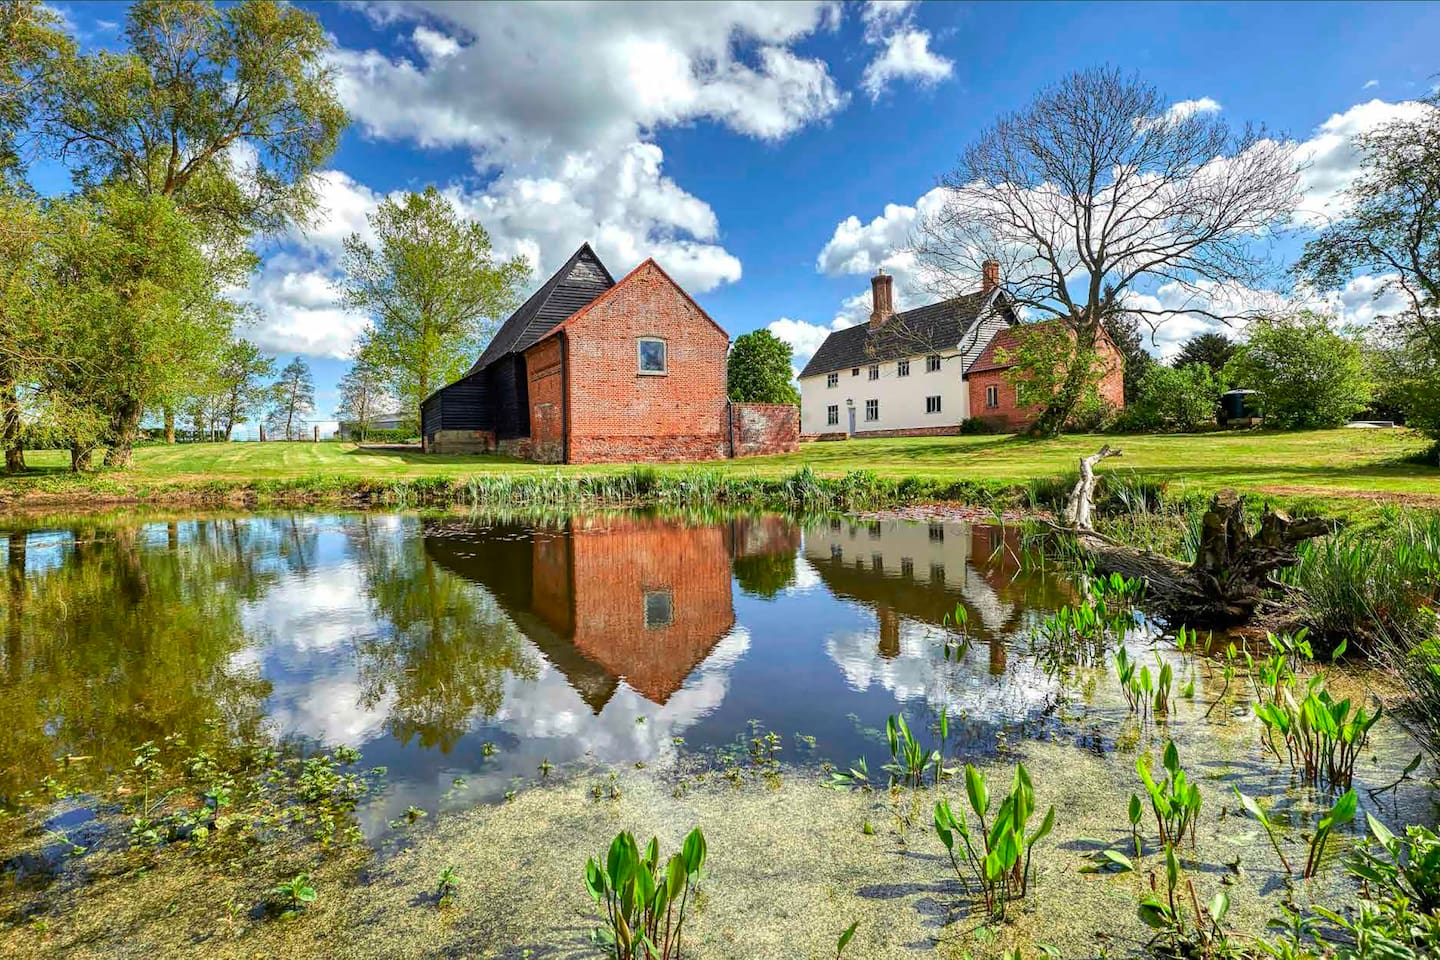 Brook Farm is a Grade 2* listed farmhouse set within two acres of mature gardens with its own lake. It also has a Grade 2 listed threshing barn used as a games room as well as a wood fired hot tub, play house and football pitch in the grounds.